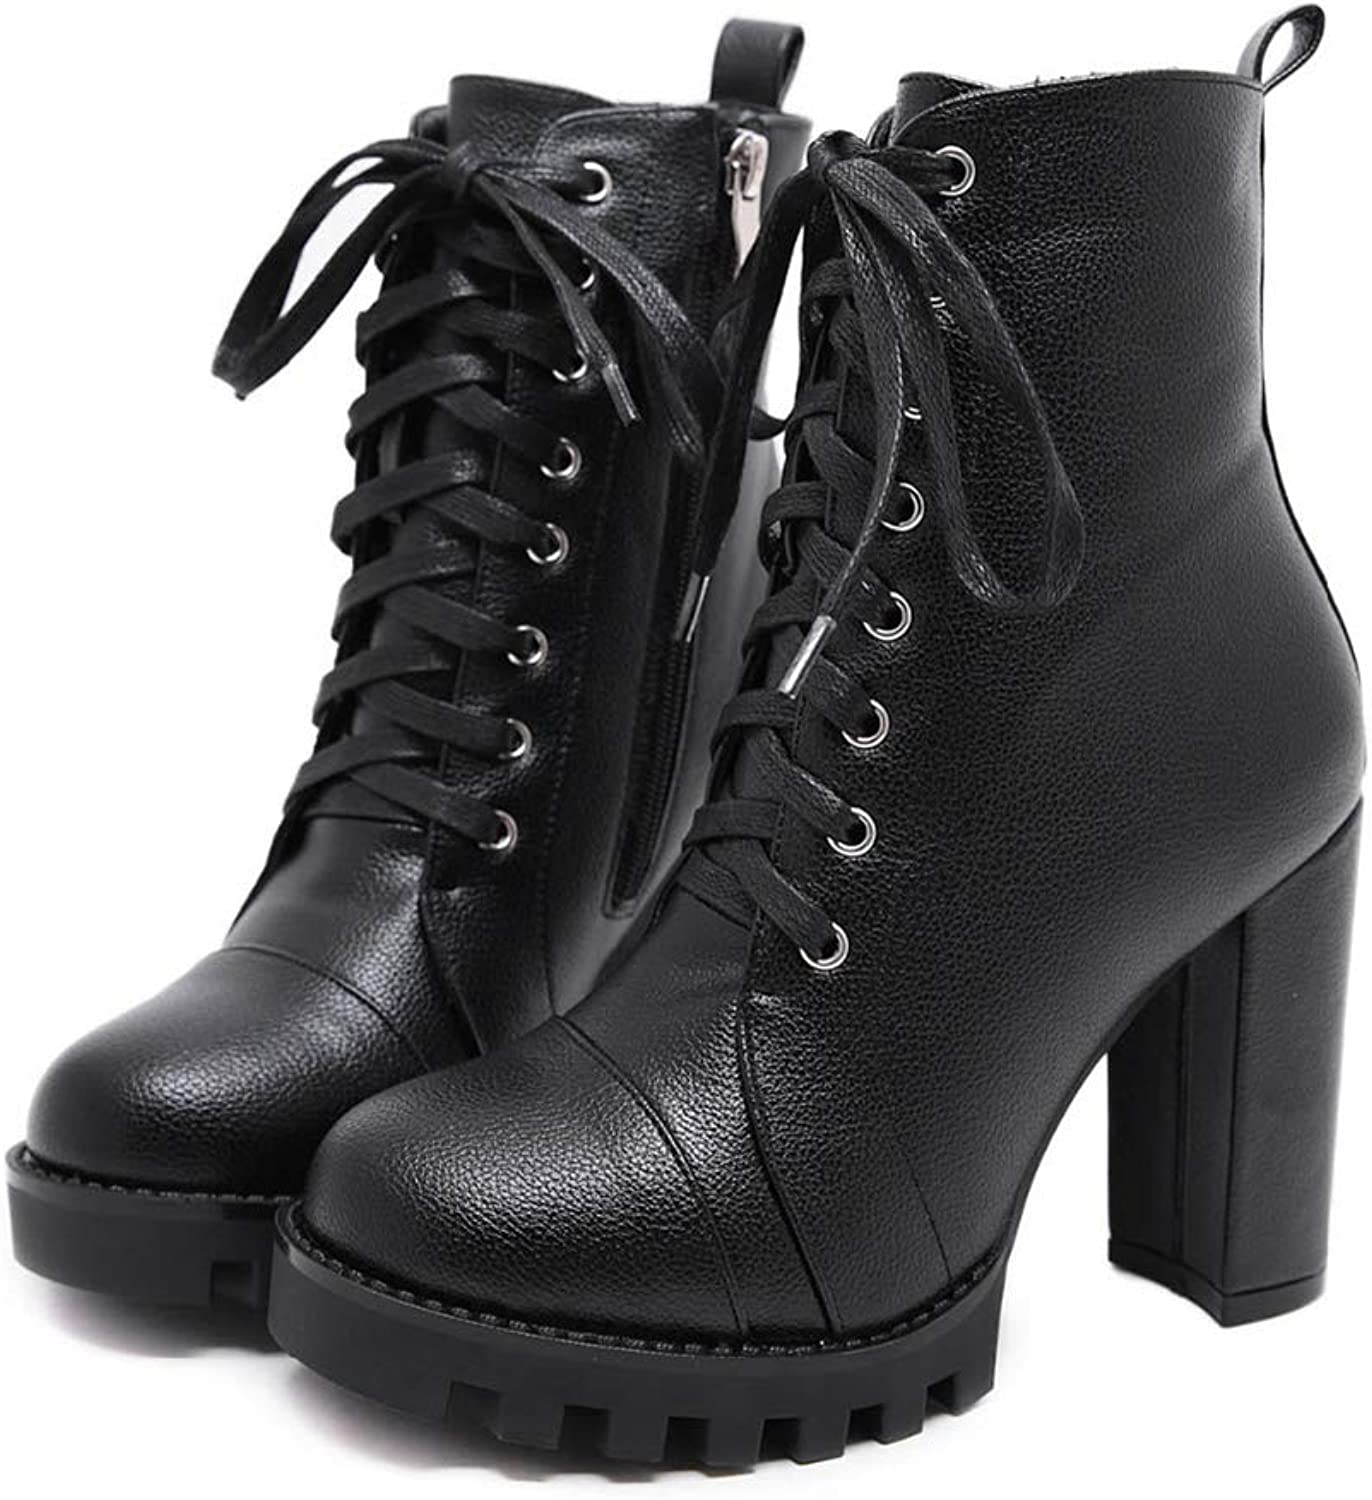 Zarbrina Womens Ankle Boots Round Toe Lace Up Cross Tied High Heels Winter Platform Warm Party Knight Booties